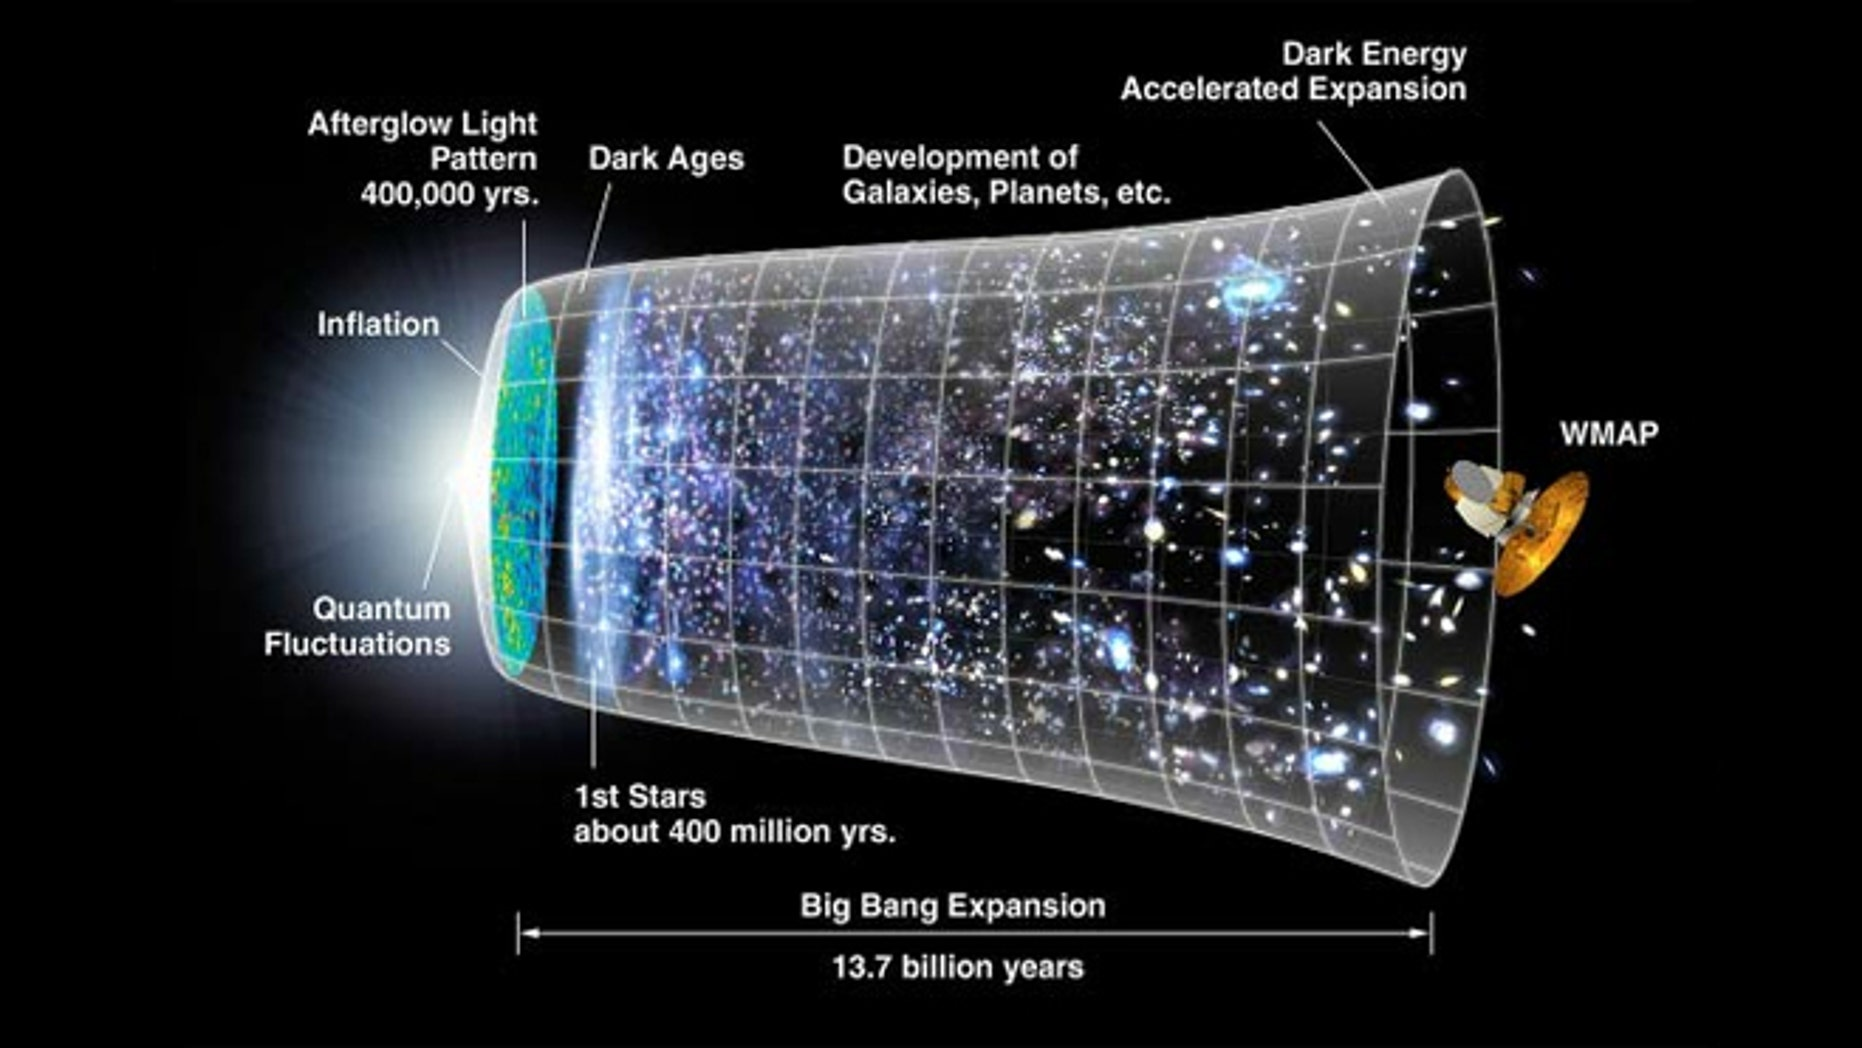 This graphic shows a timeline of the universe based on the Big Bang theory and inflation models.